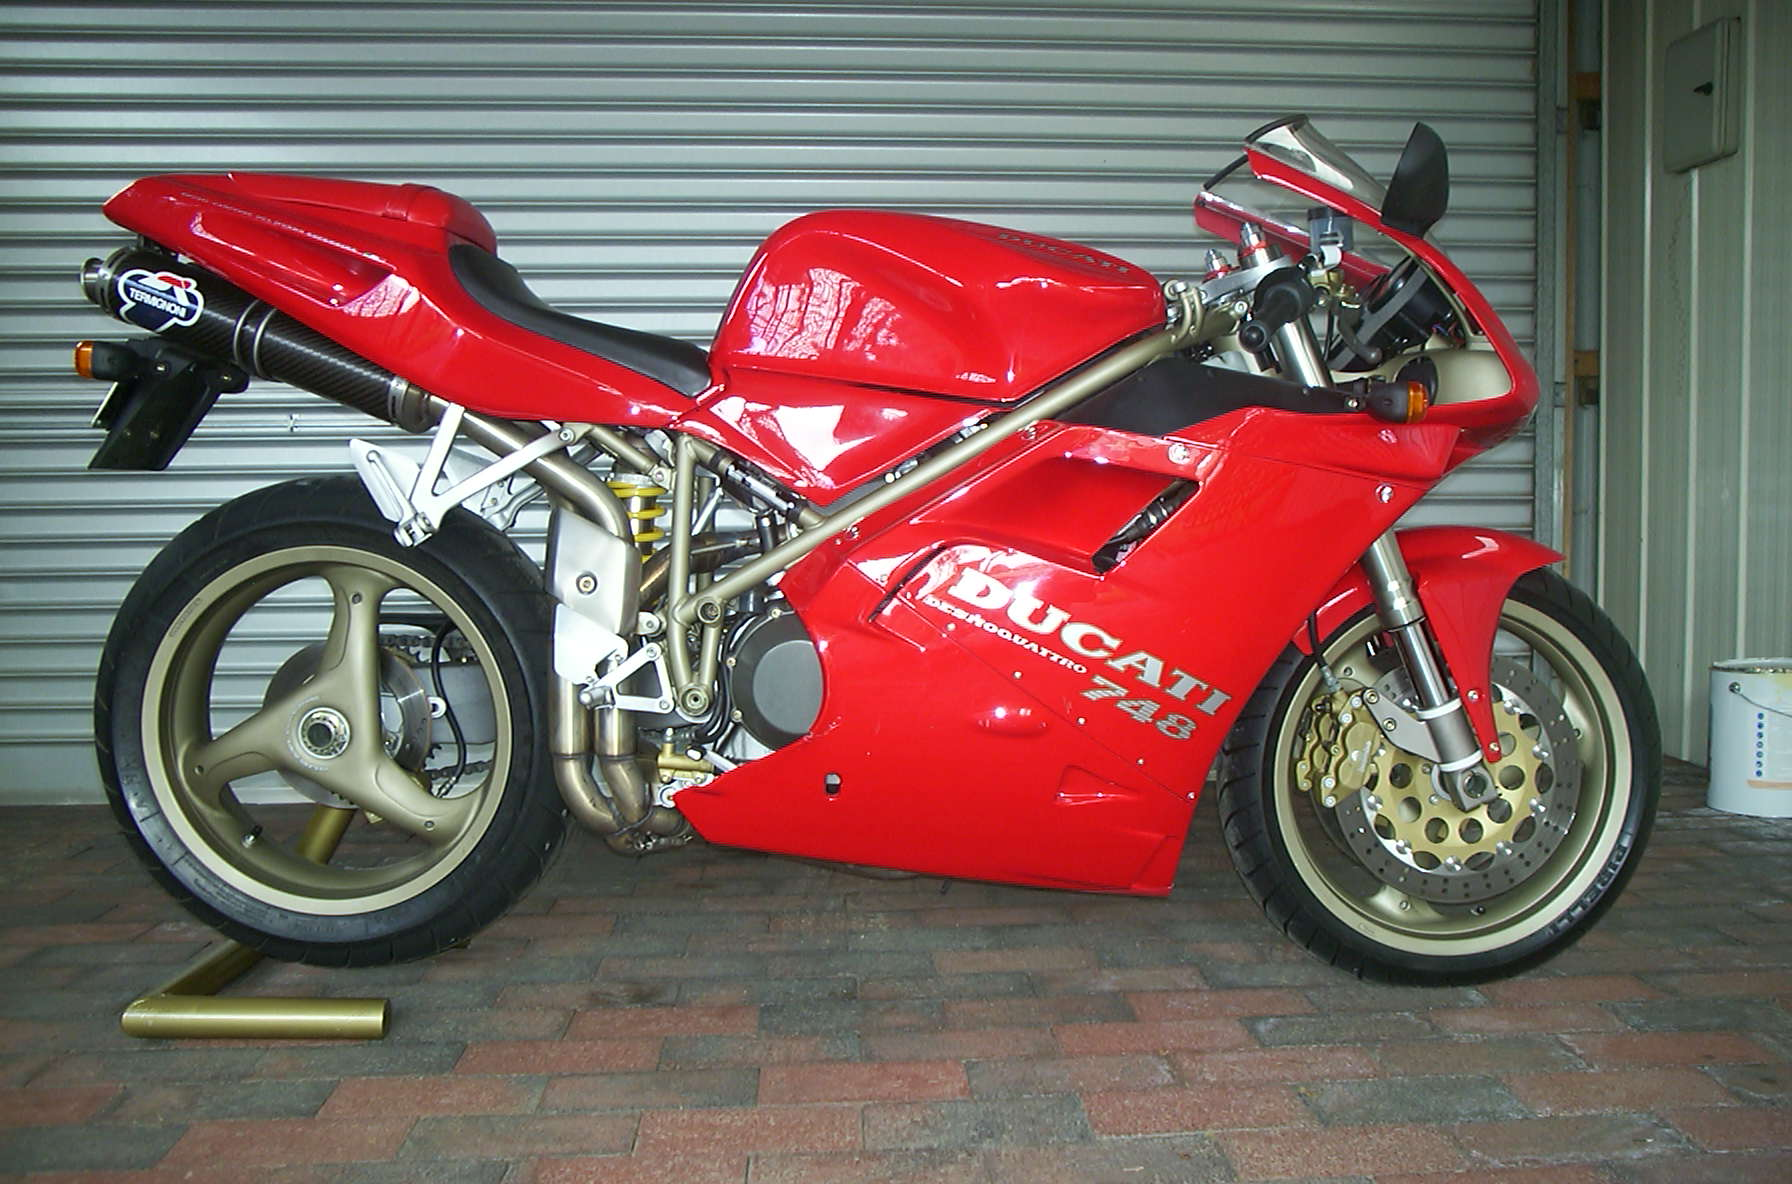 ducati 916 sps: pics, specs and list of seriessyear